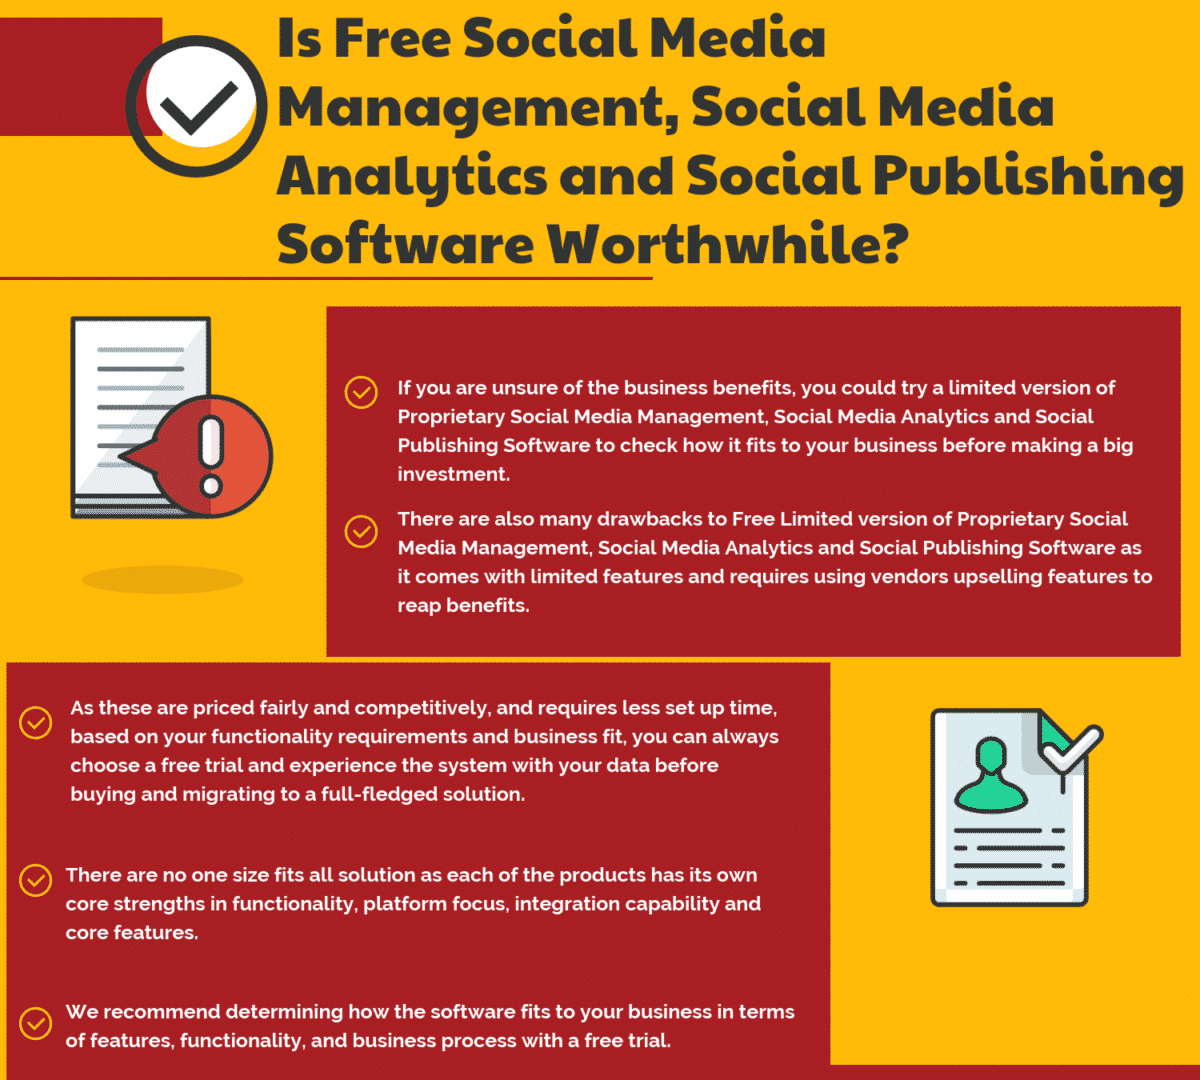 Is Free Social Media Management, Social Media Analytics and Social Publishing Software Worthwhile